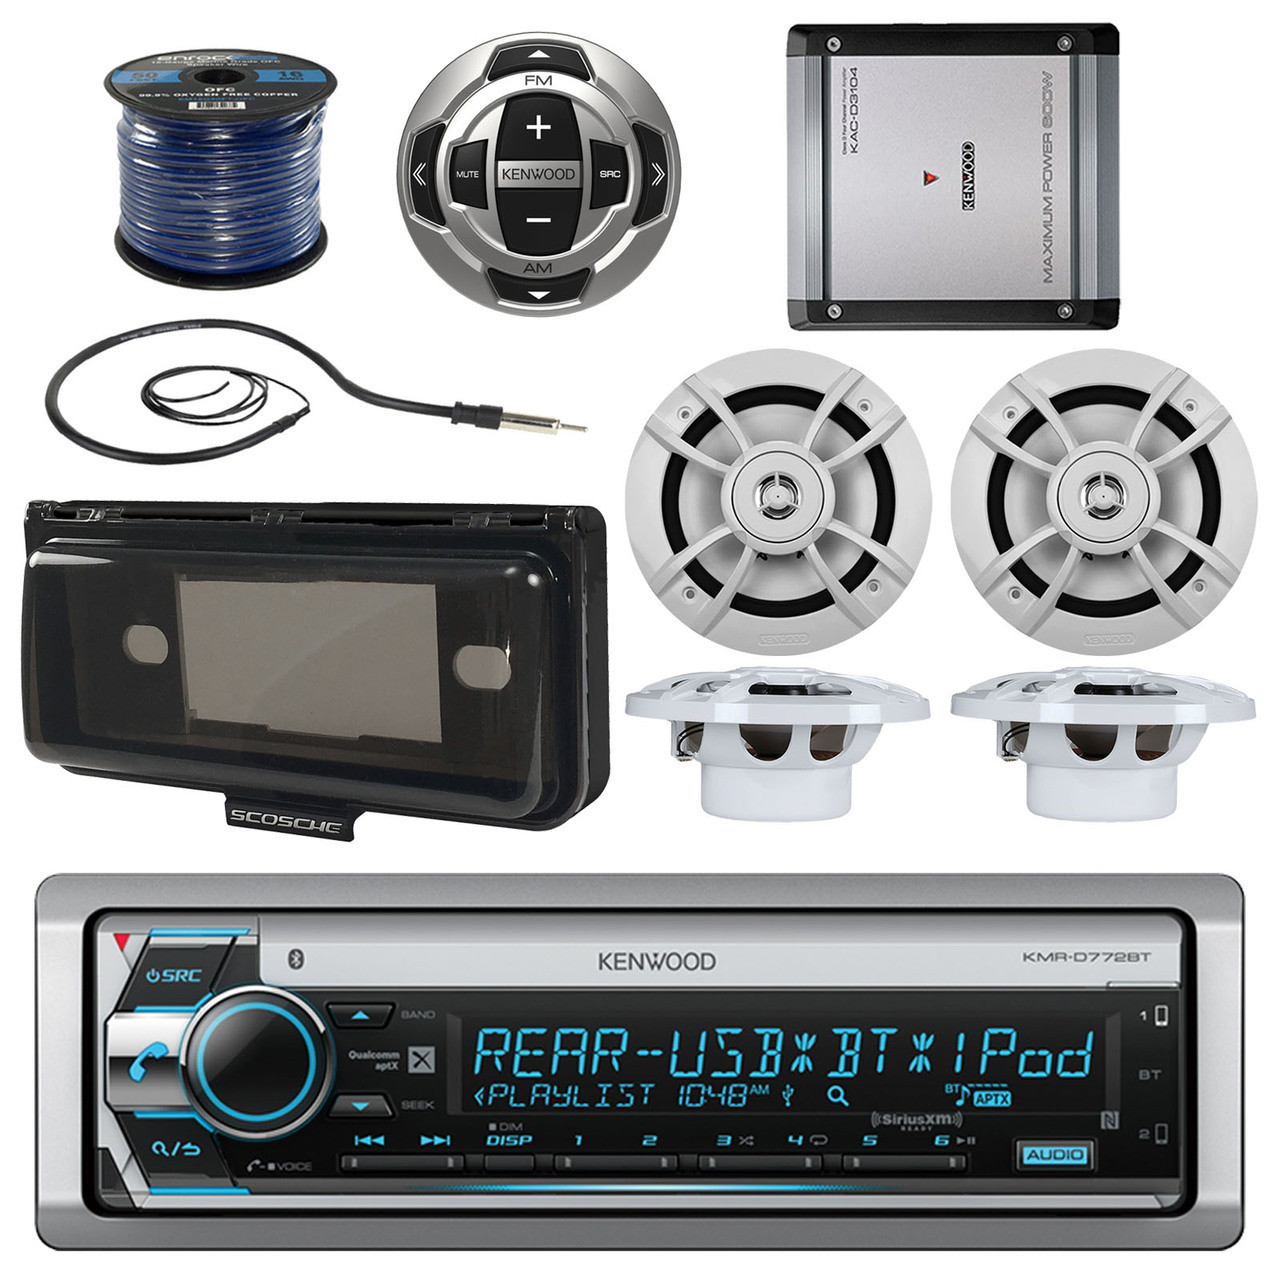 small resolution of kenwood usb cd bluetooth boat radio remote 6 5 speakers wires amp antenna cover mbnpn498 road entertainment